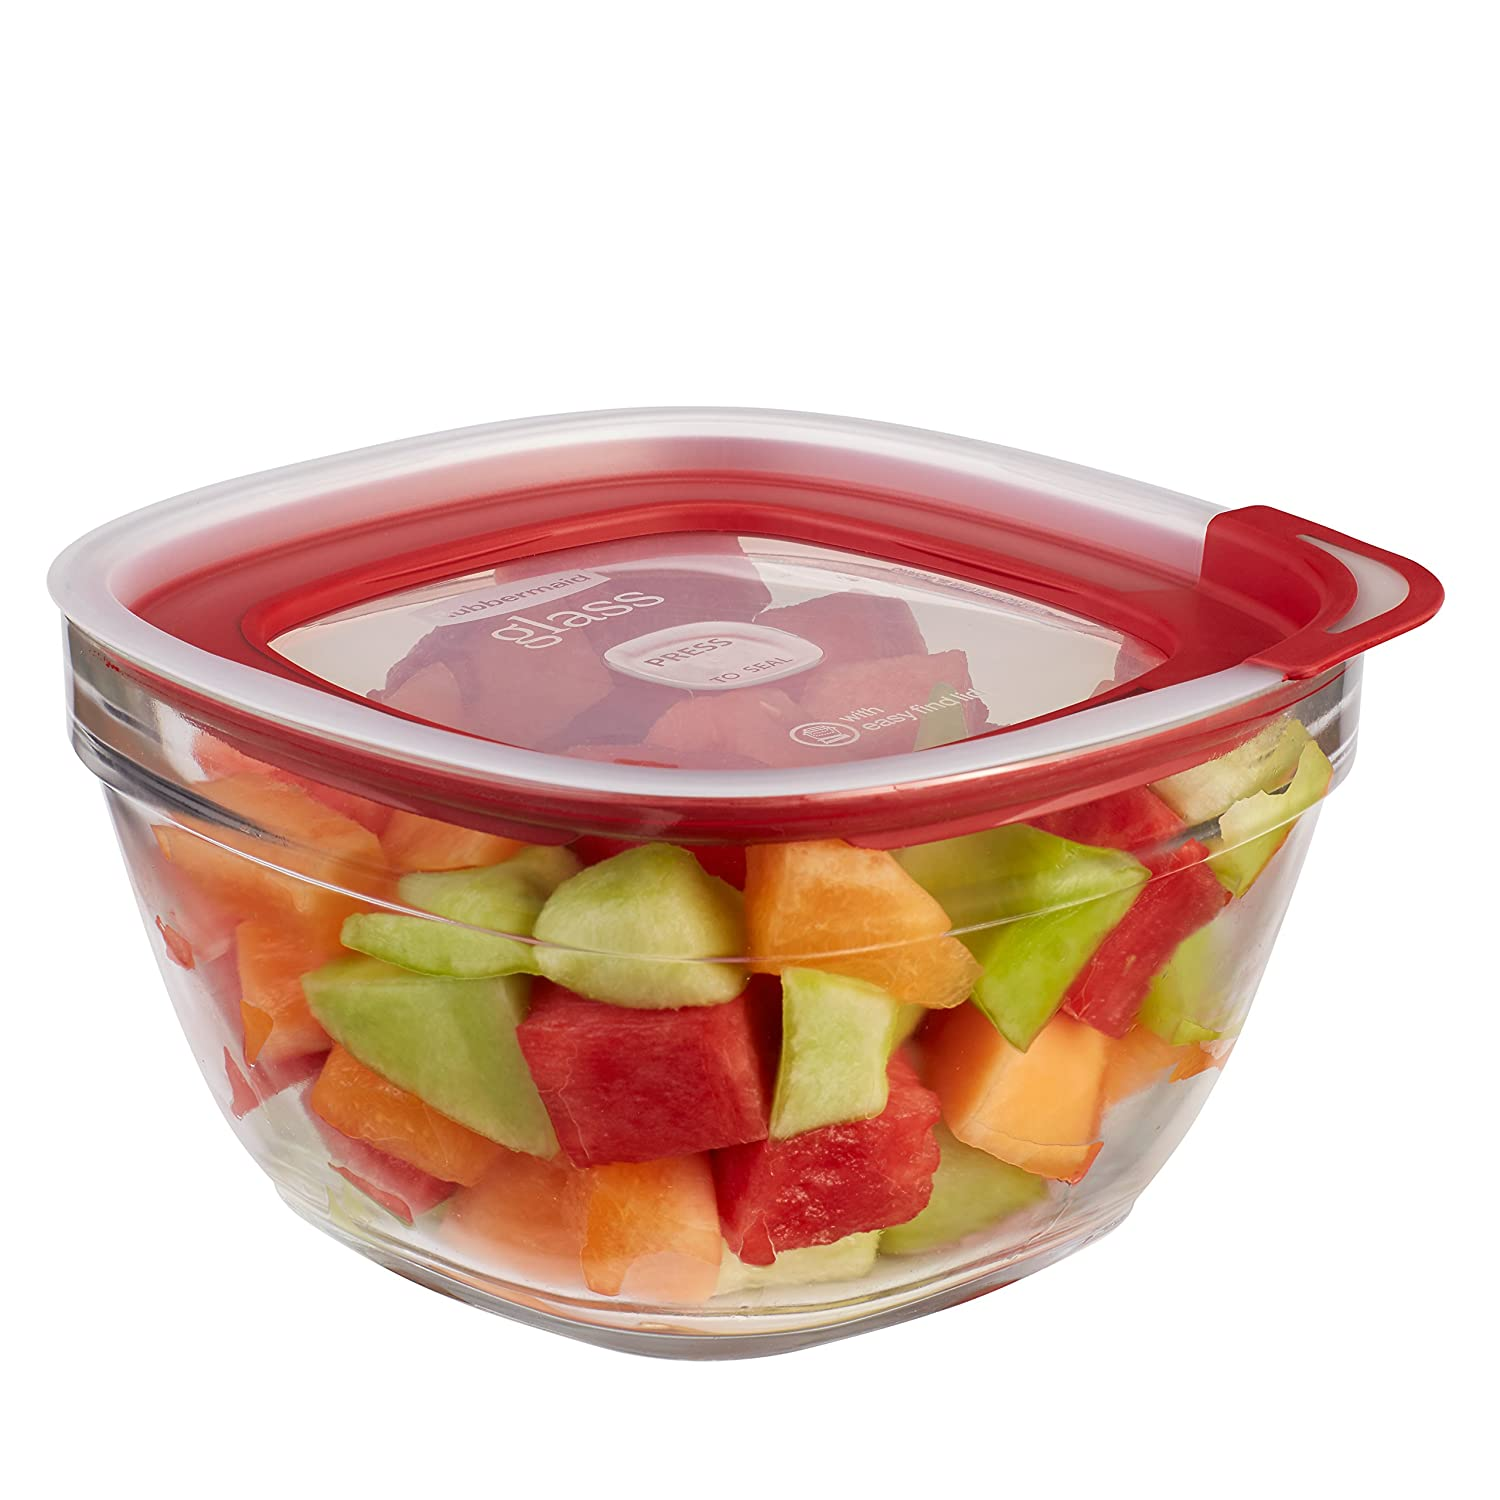 Rubbermaid Easy Find Lids Glass Food Storage Container, 11.5 Cup, Racer Red 2856007